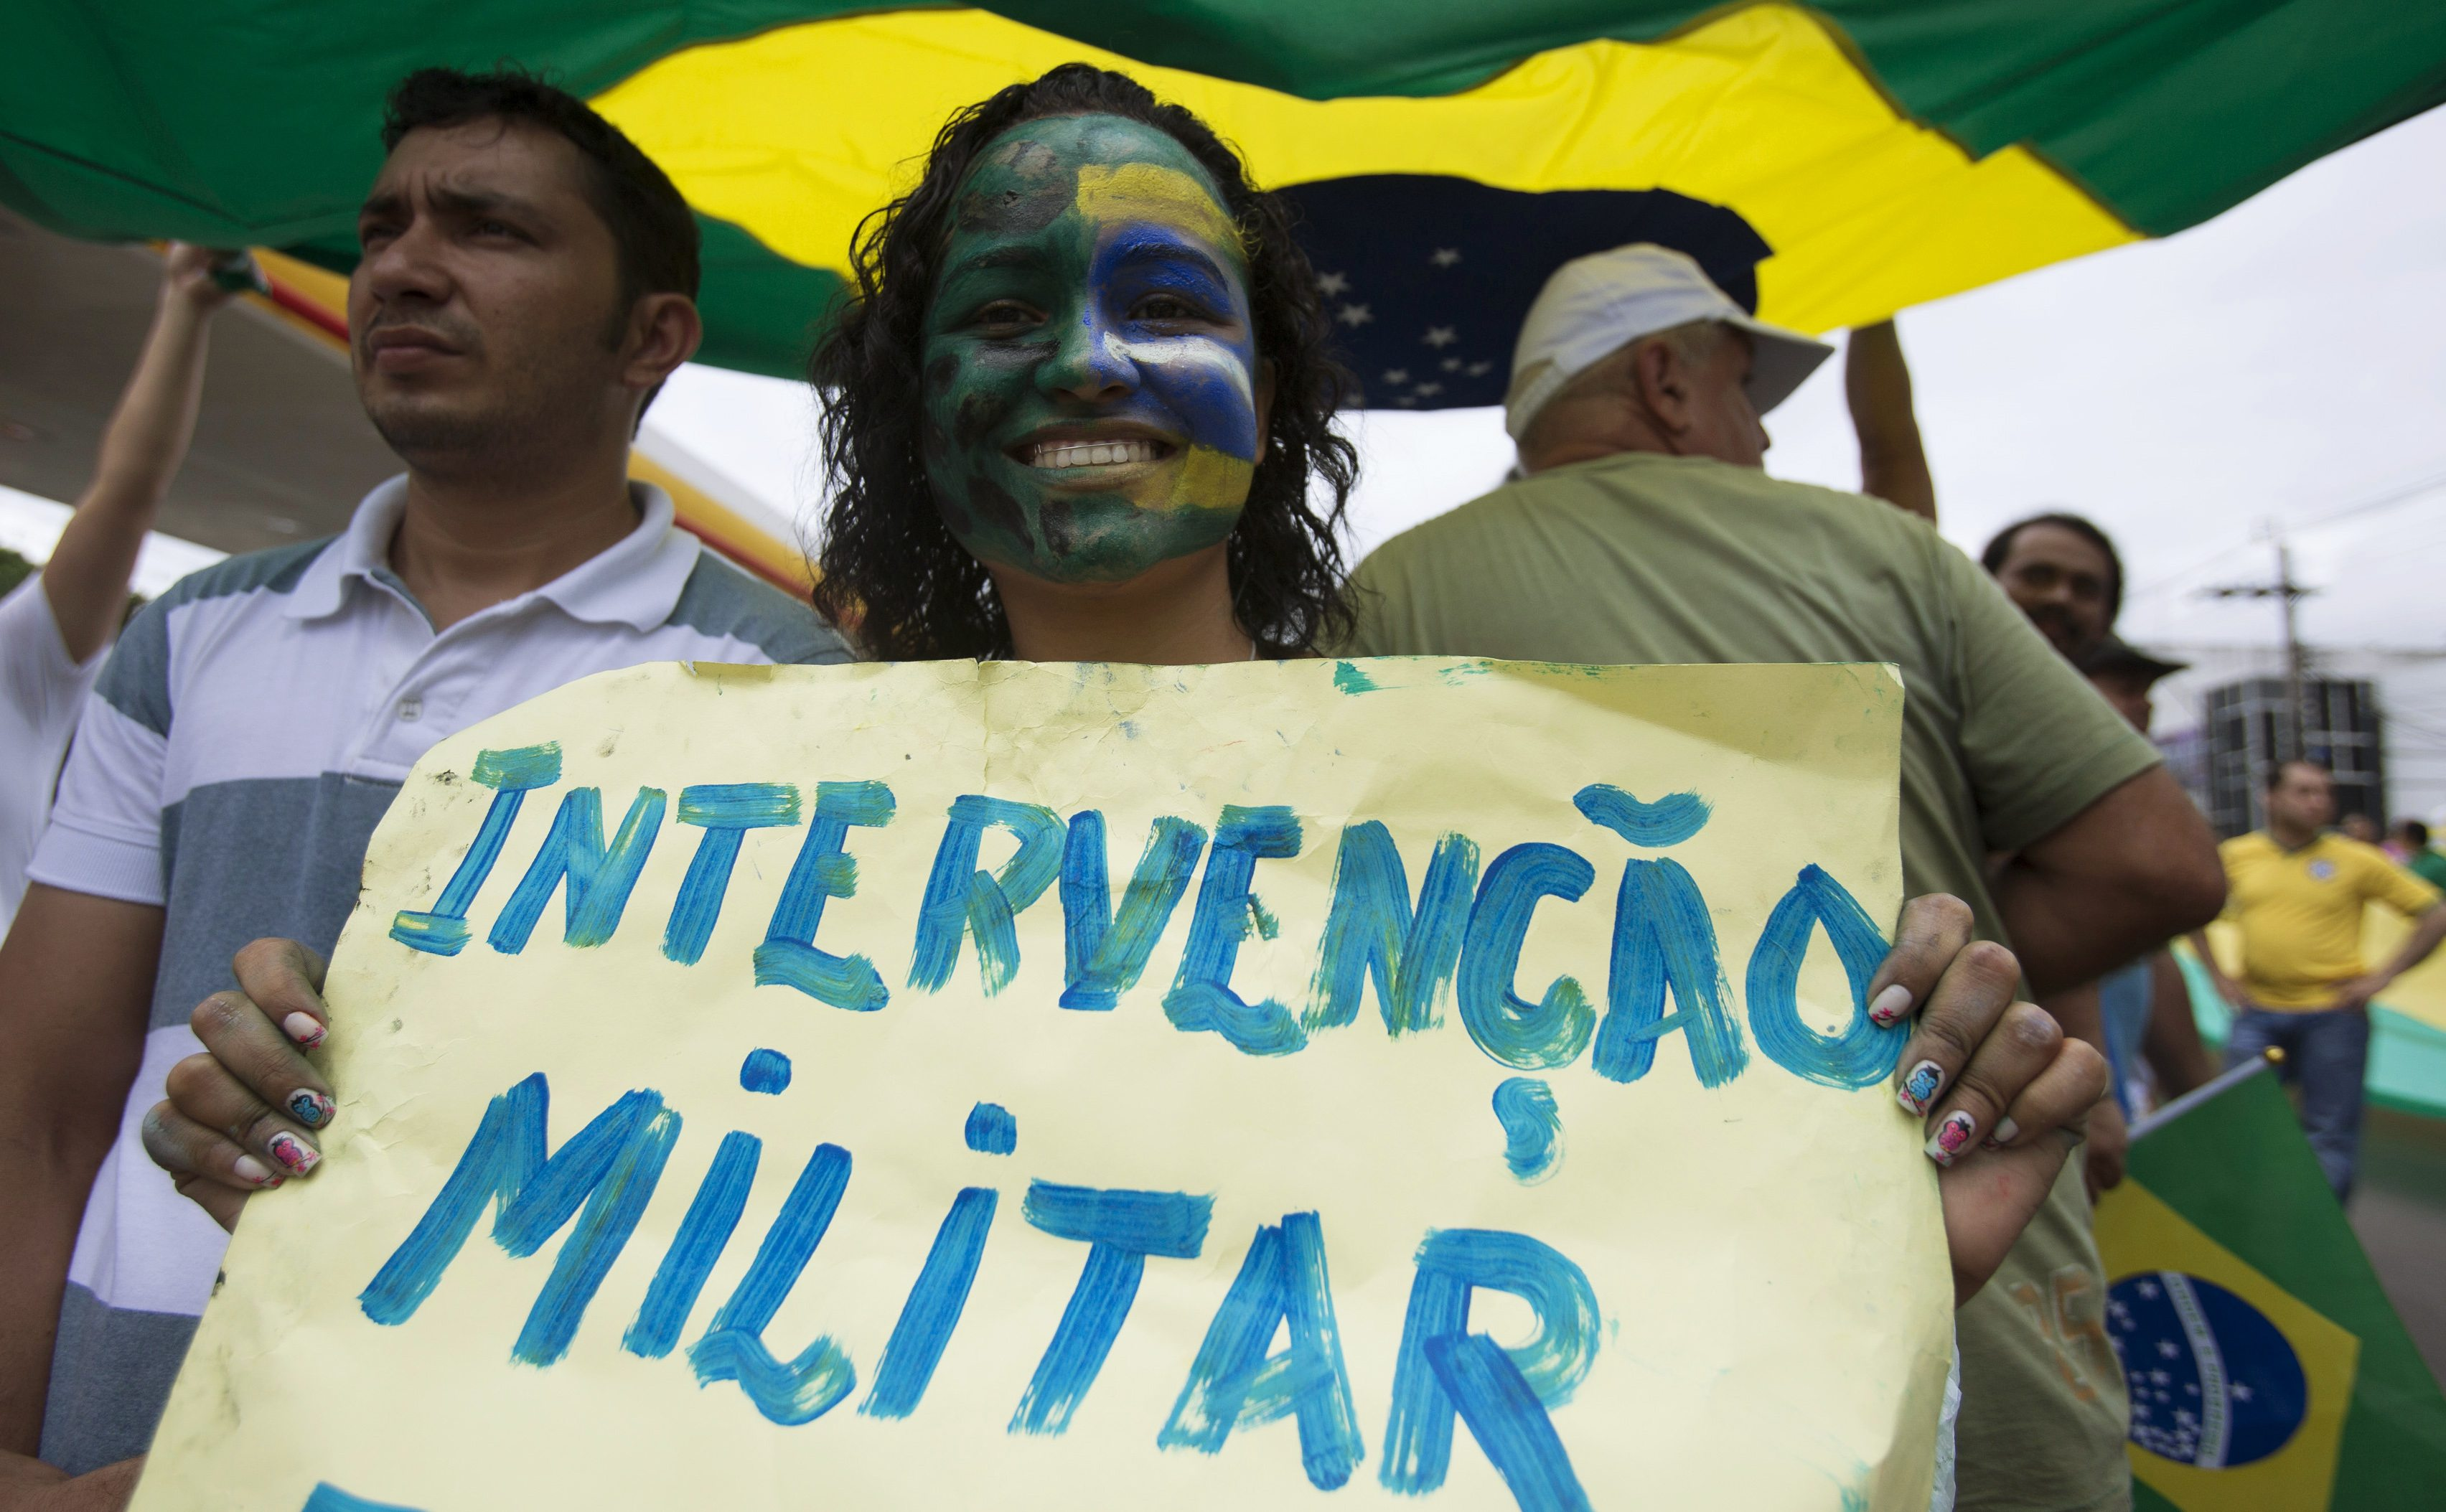 "A woman shows a placard reading ""Military intervention"" during a protest against Brazil's President Dilma Rousseff in Manaus, Amazonas state March 15, 2015. Protest organizers in dozens of cities across Brazil are planning marches to pressure Rousseff over unpopular budget cuts and a corruption scandal that has snared leaders of her political coalition. REUTERS/Bruno Kelly  (BRAZIL - Tags: POLITICS CIVIL UNREST)"